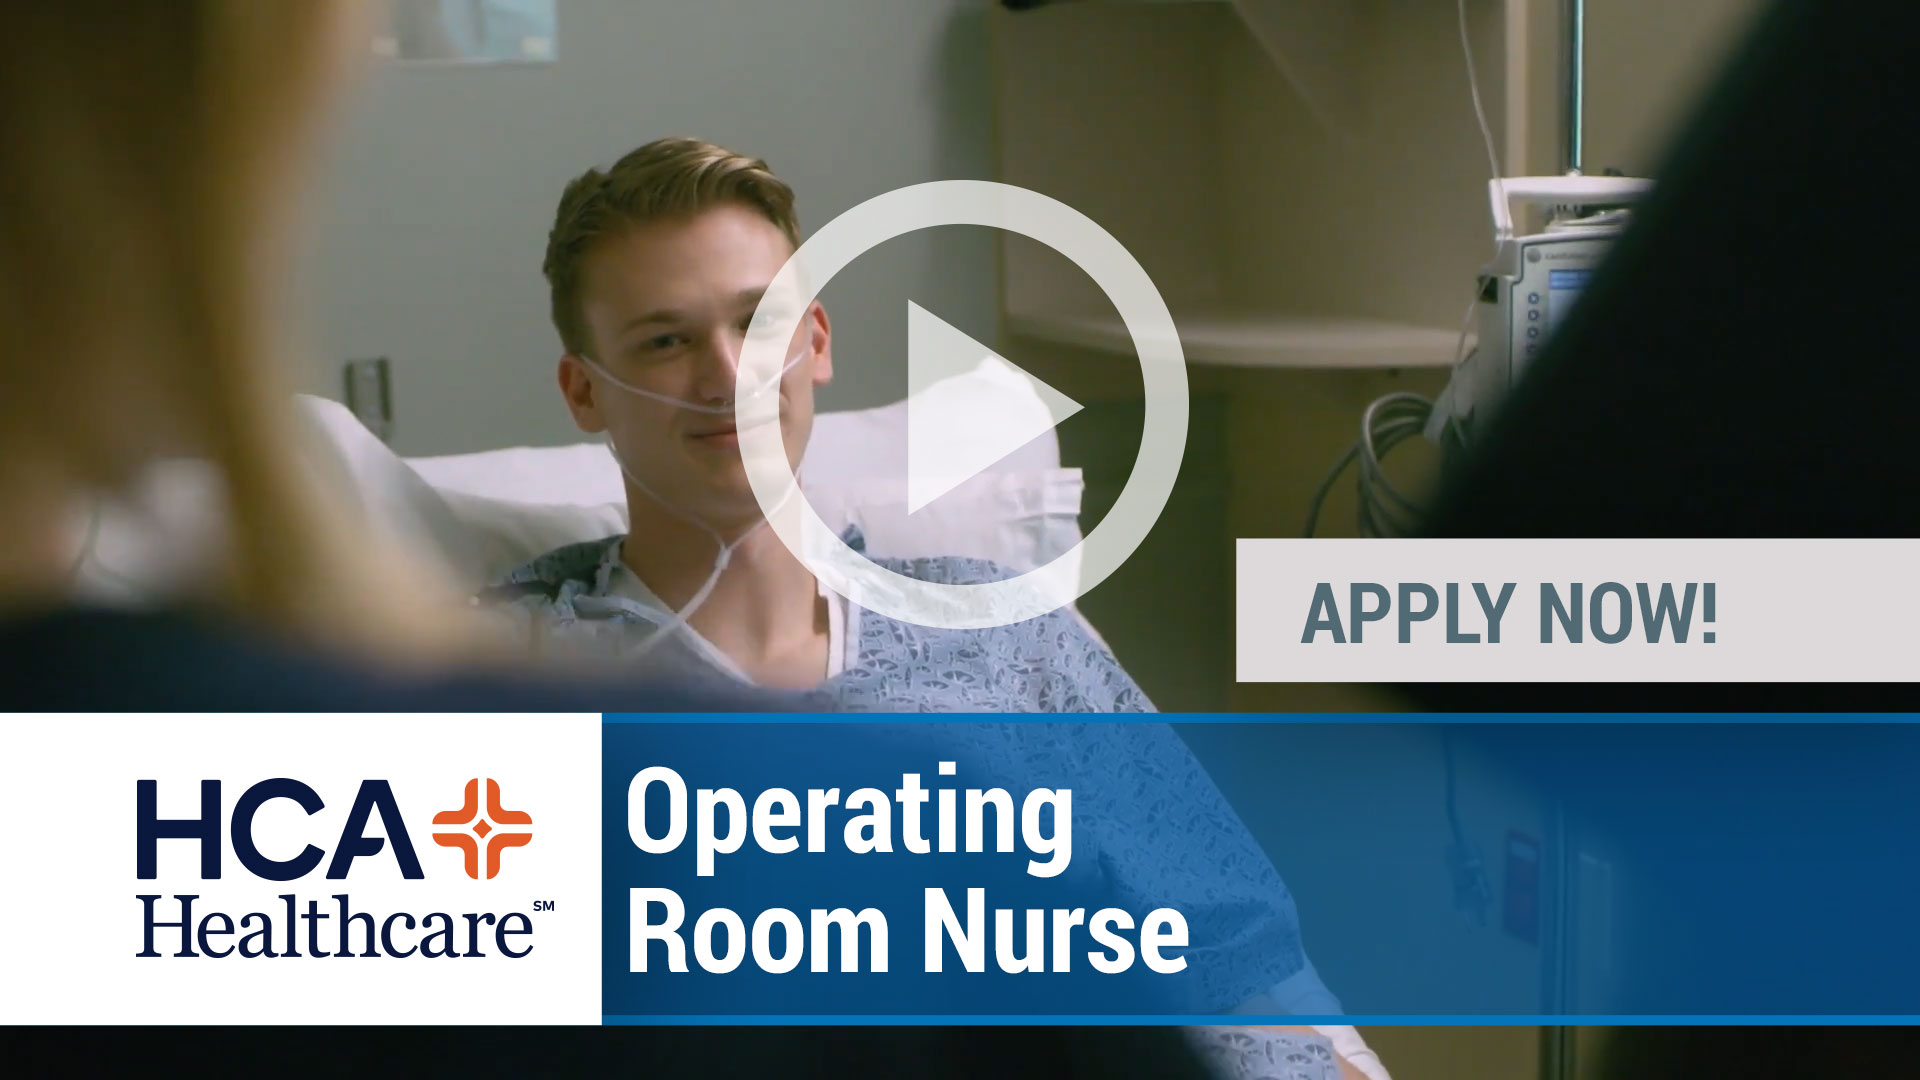 Watch our careers video for available job opening Operating Room Nurse in Hudson, Florida